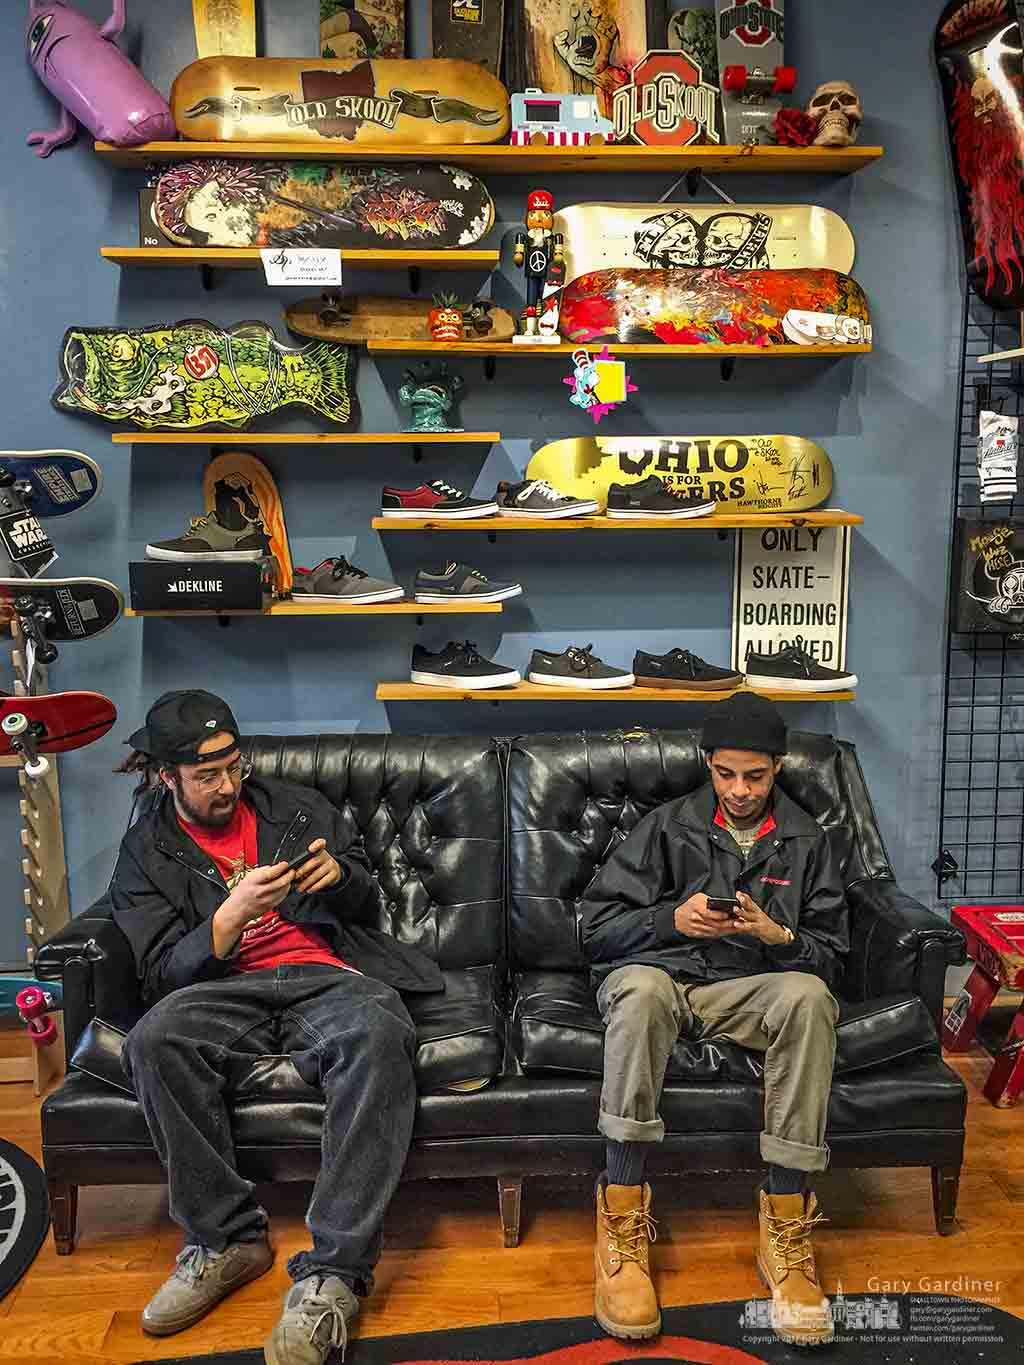 A pair of skateboarders check their smartphones from the couch in Old Skool Skateshop in Uptown Westerville as they wait for warmer and drier weather to spend time in the skate park. My Final Photo for Jan. 18, 2017.